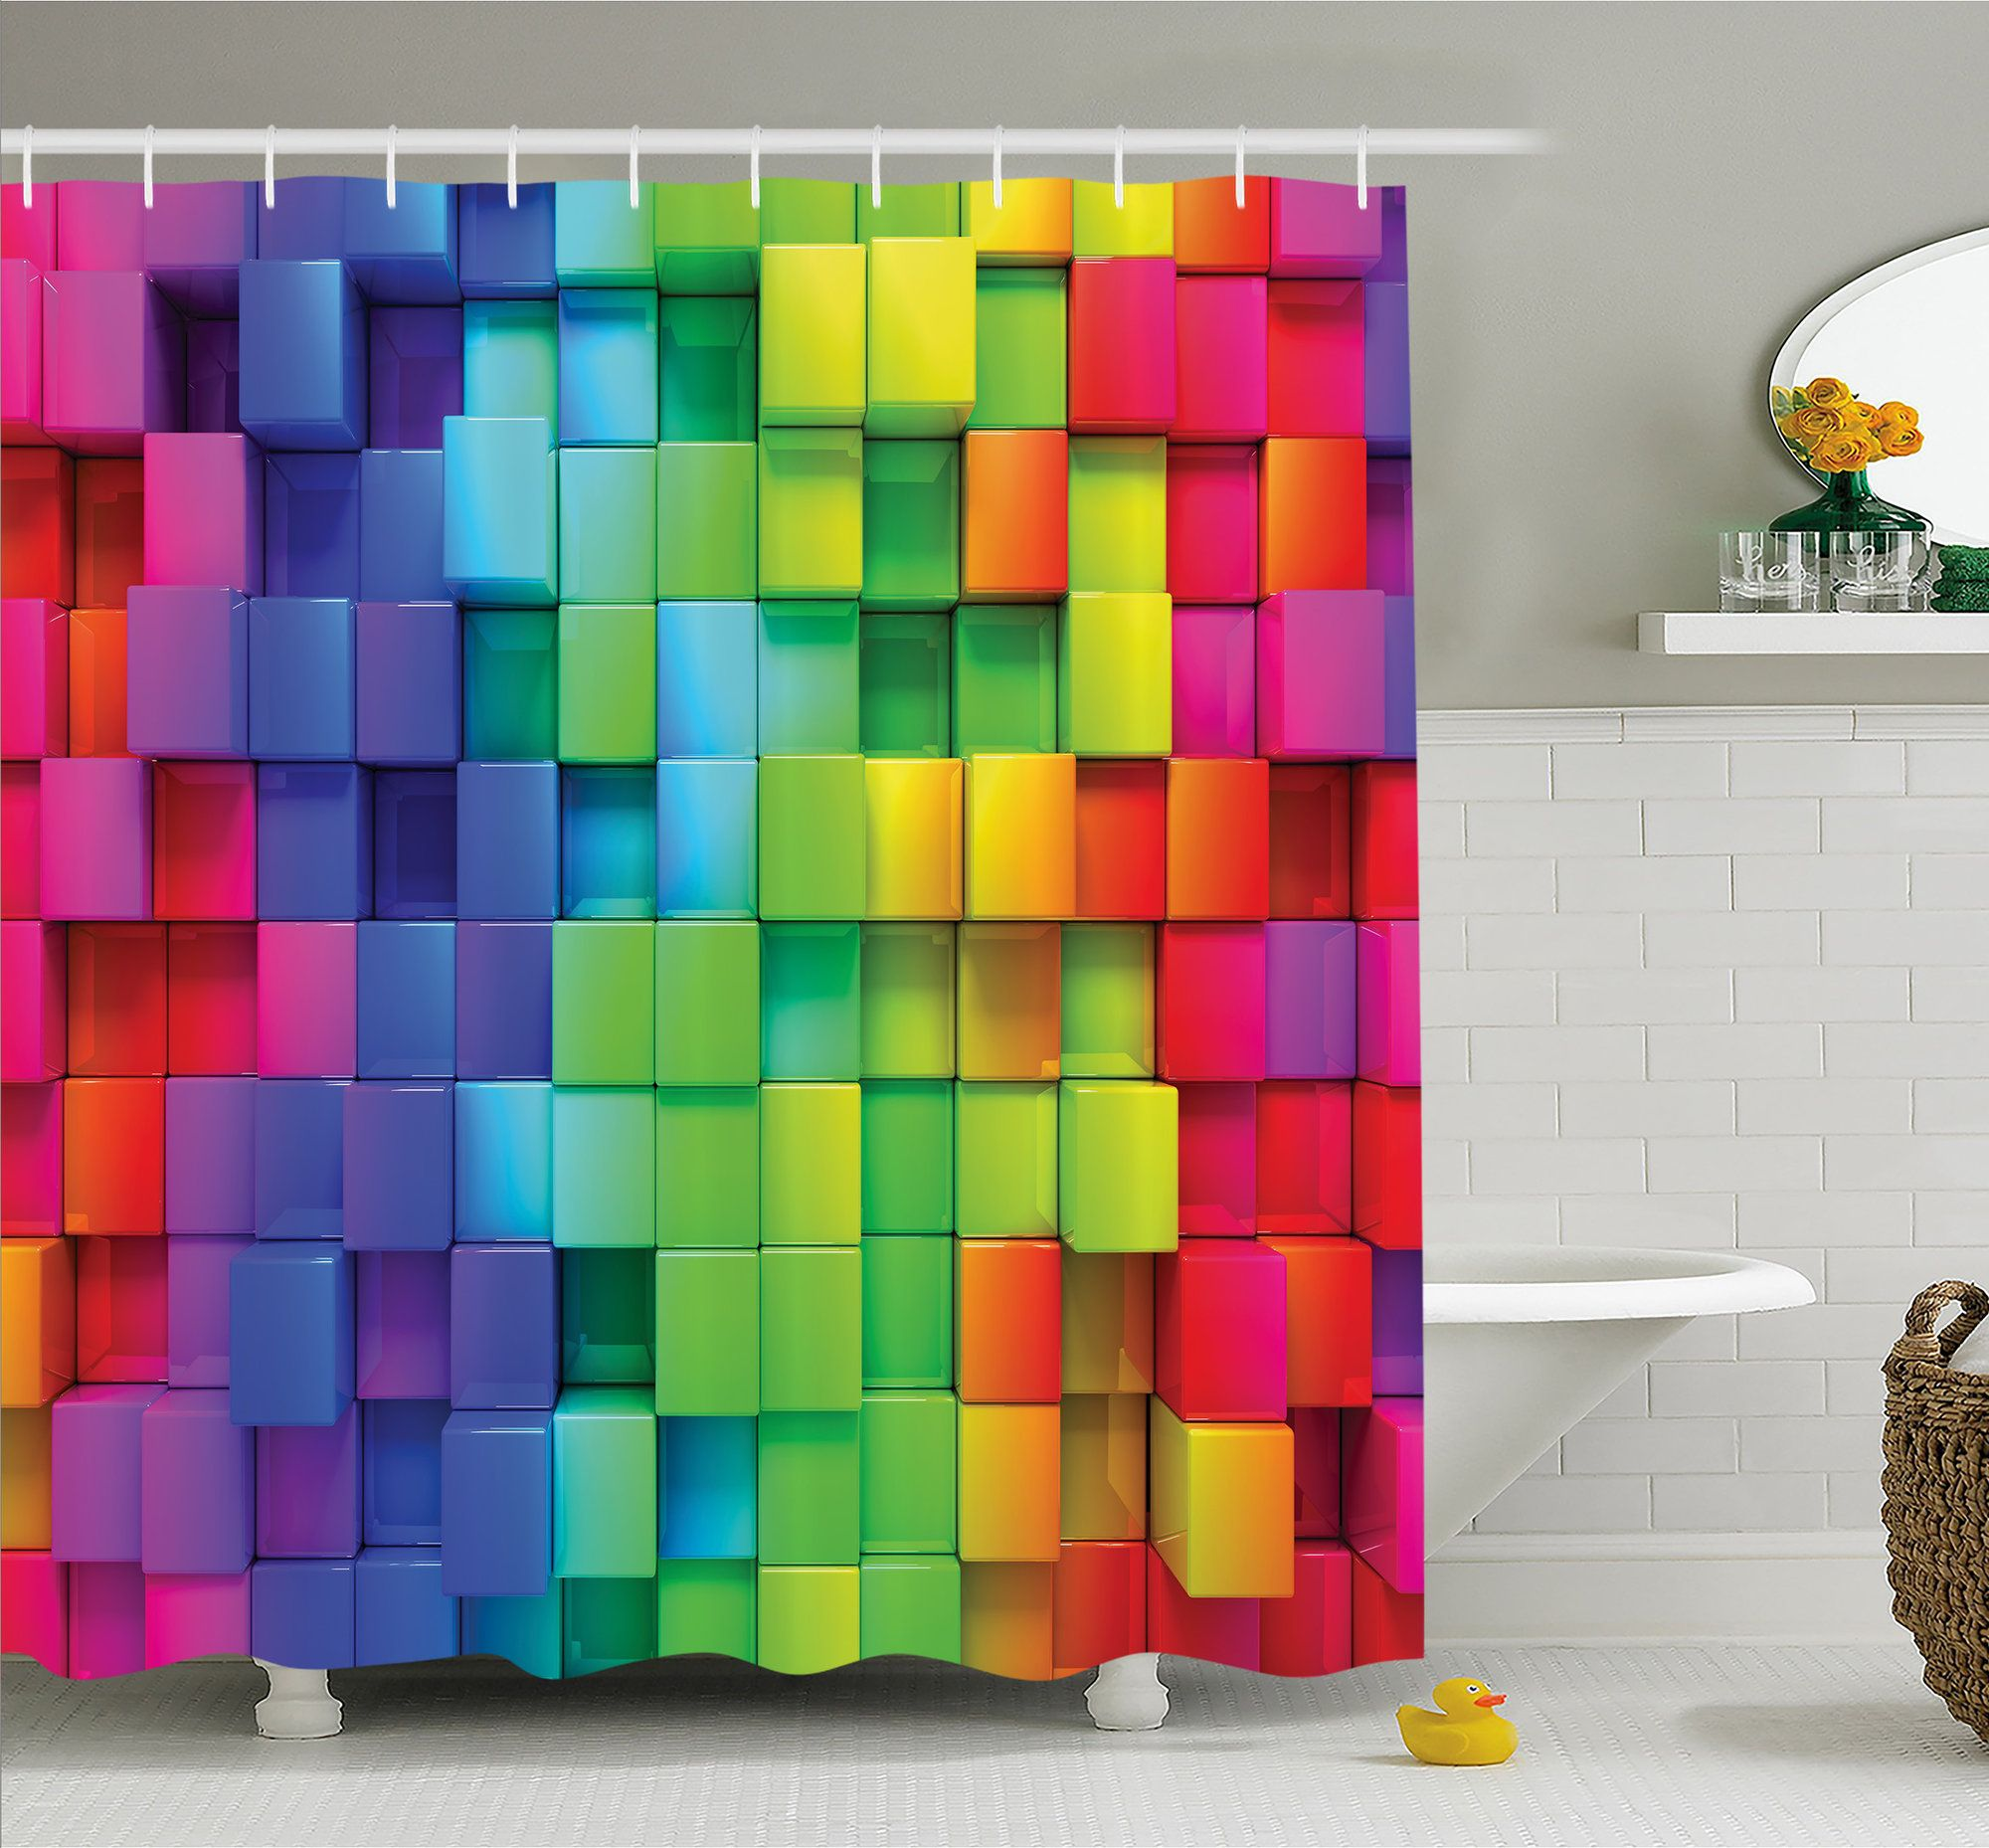 Bathroom Decor for 12 Hooks Included for Fabric Shower Curtain Set by Ambesonne